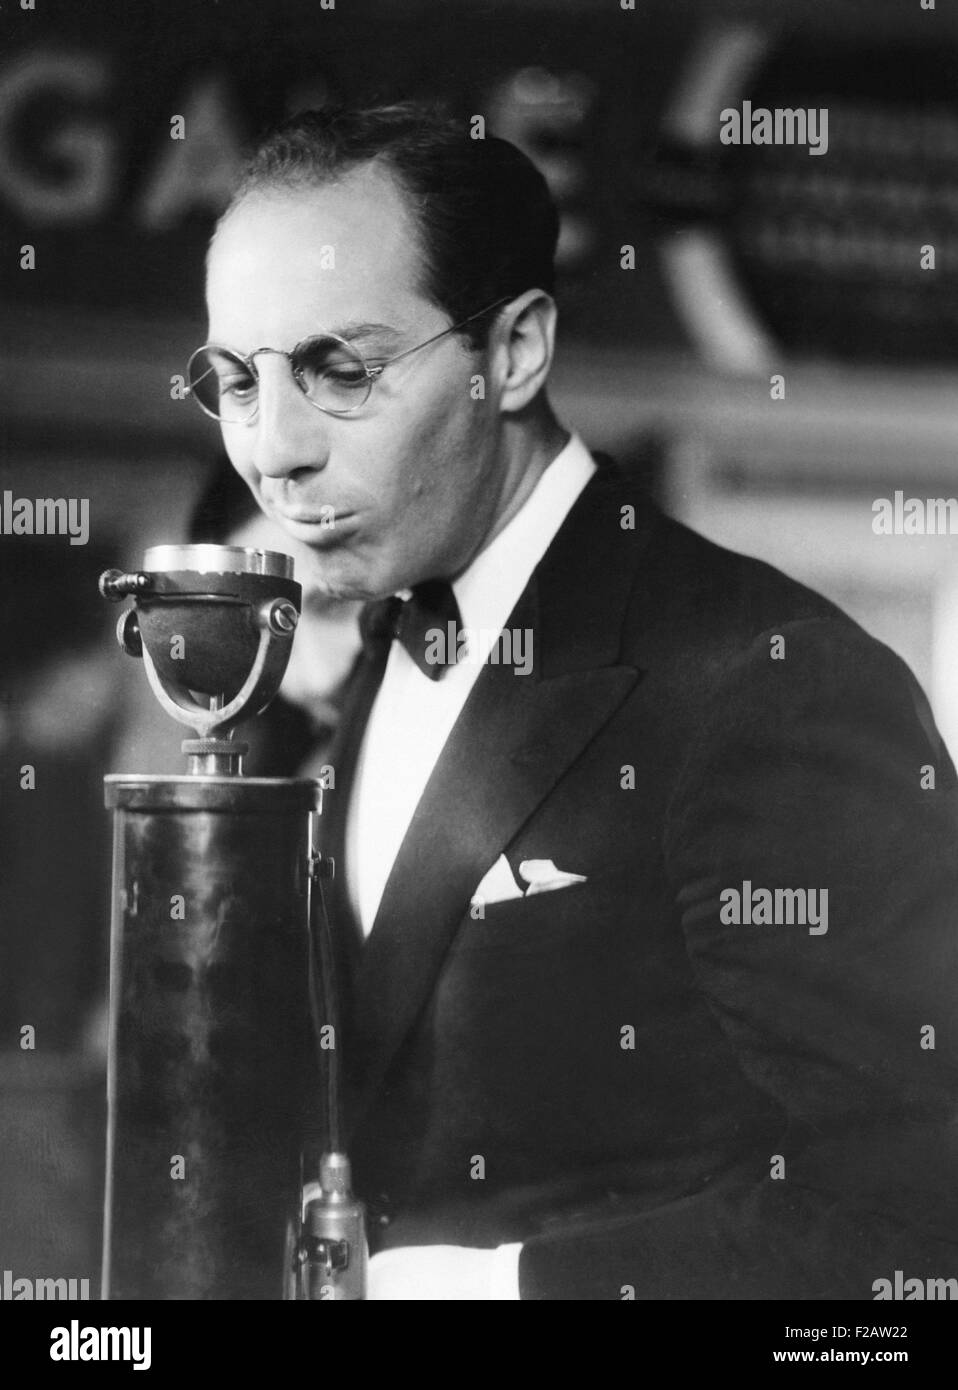 Zeppo Marx speaks at the Premier of BILL OF DIVORCEMENT. At the Hill Street Theater in Los Angeles, Oct. 24, 1933. - Stock Image